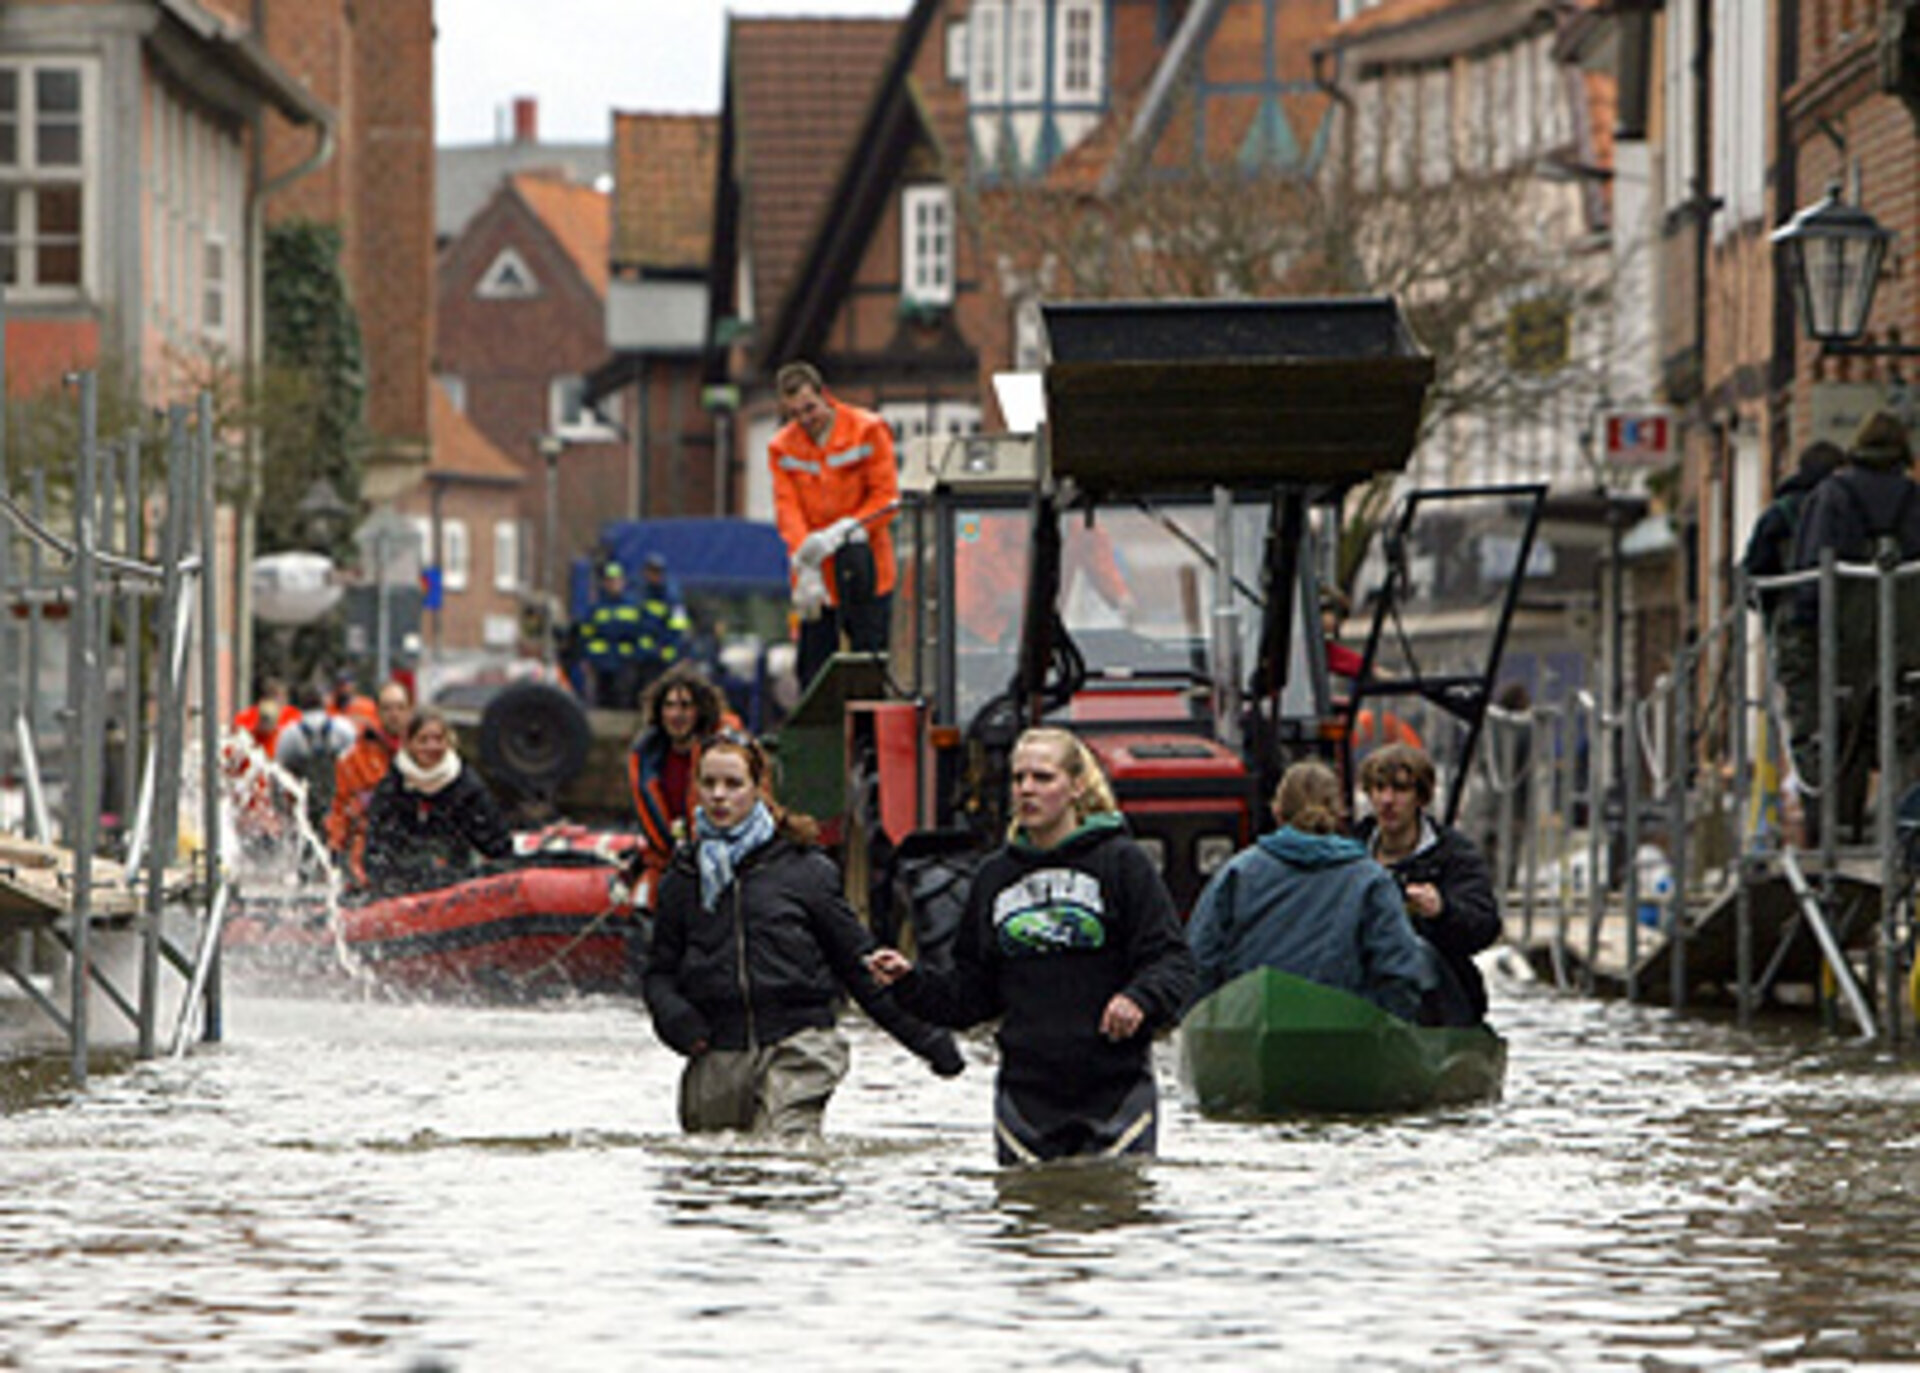 Residents make their way through a flooded street